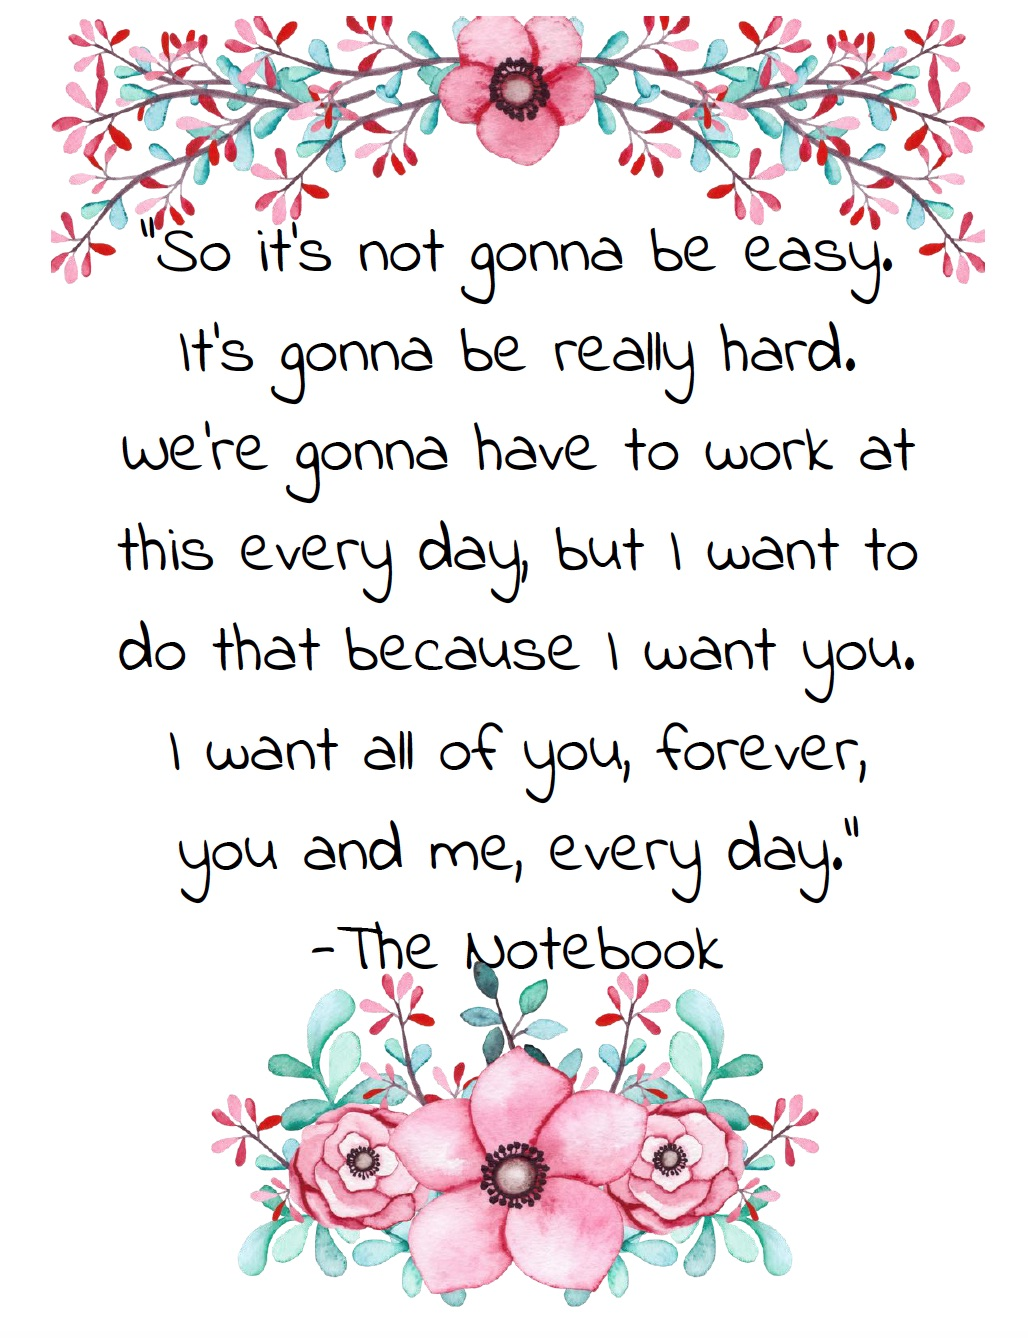 "Free Printable Romantic Movie Quotes: 6 Designs. ""So it's not gonna be easy..."" from The Notebook."